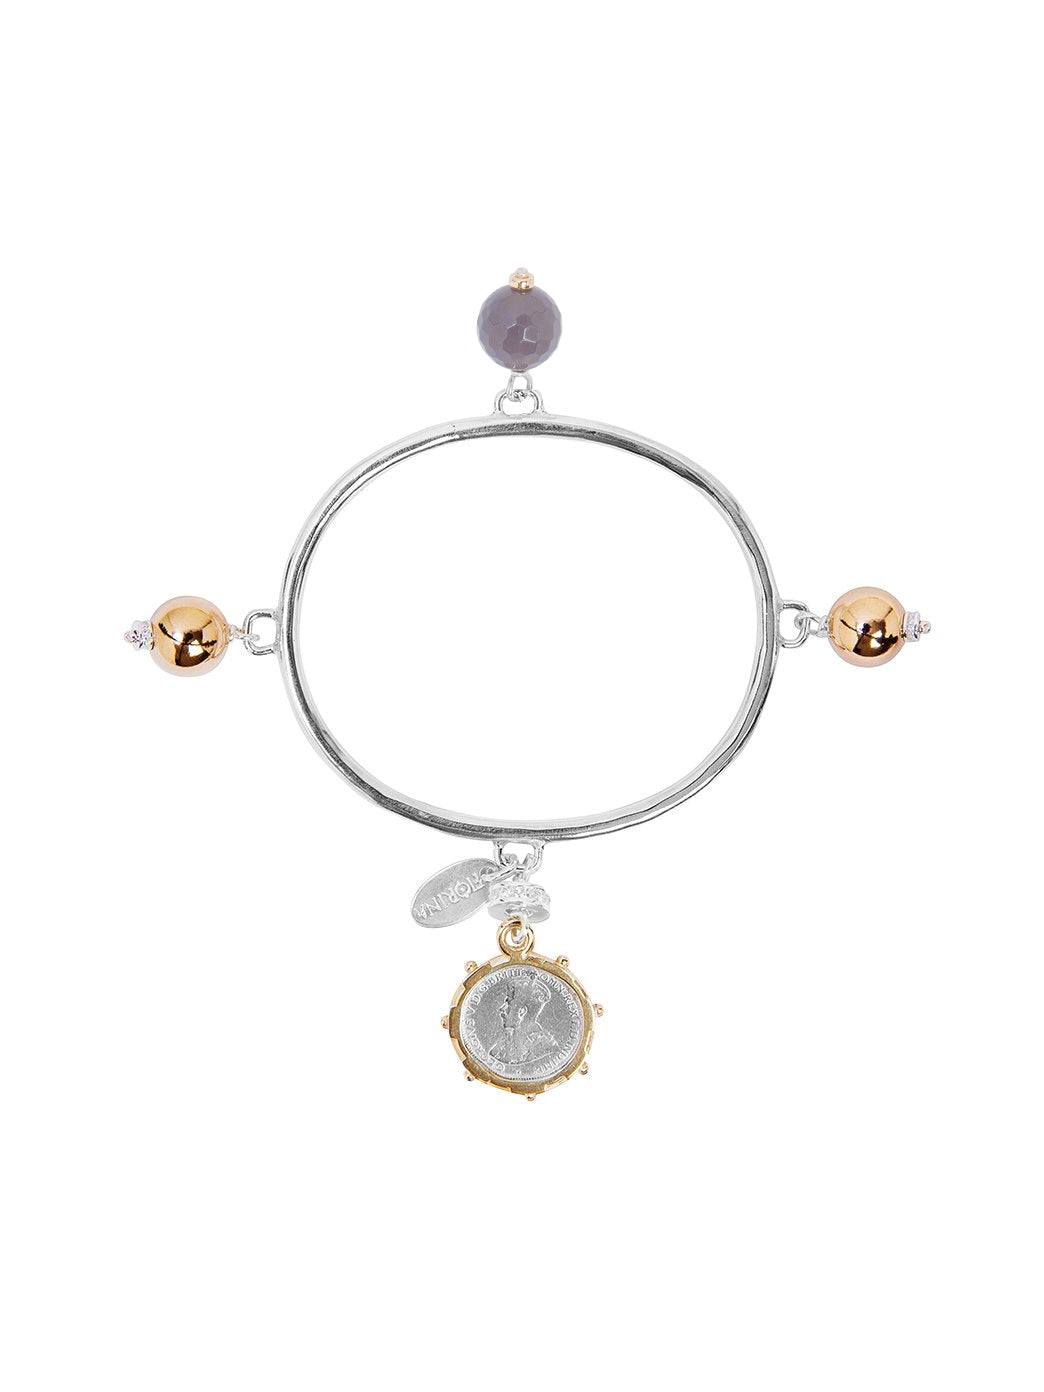 Fiorina Jewellery Vivaldi Bangle Moonstone